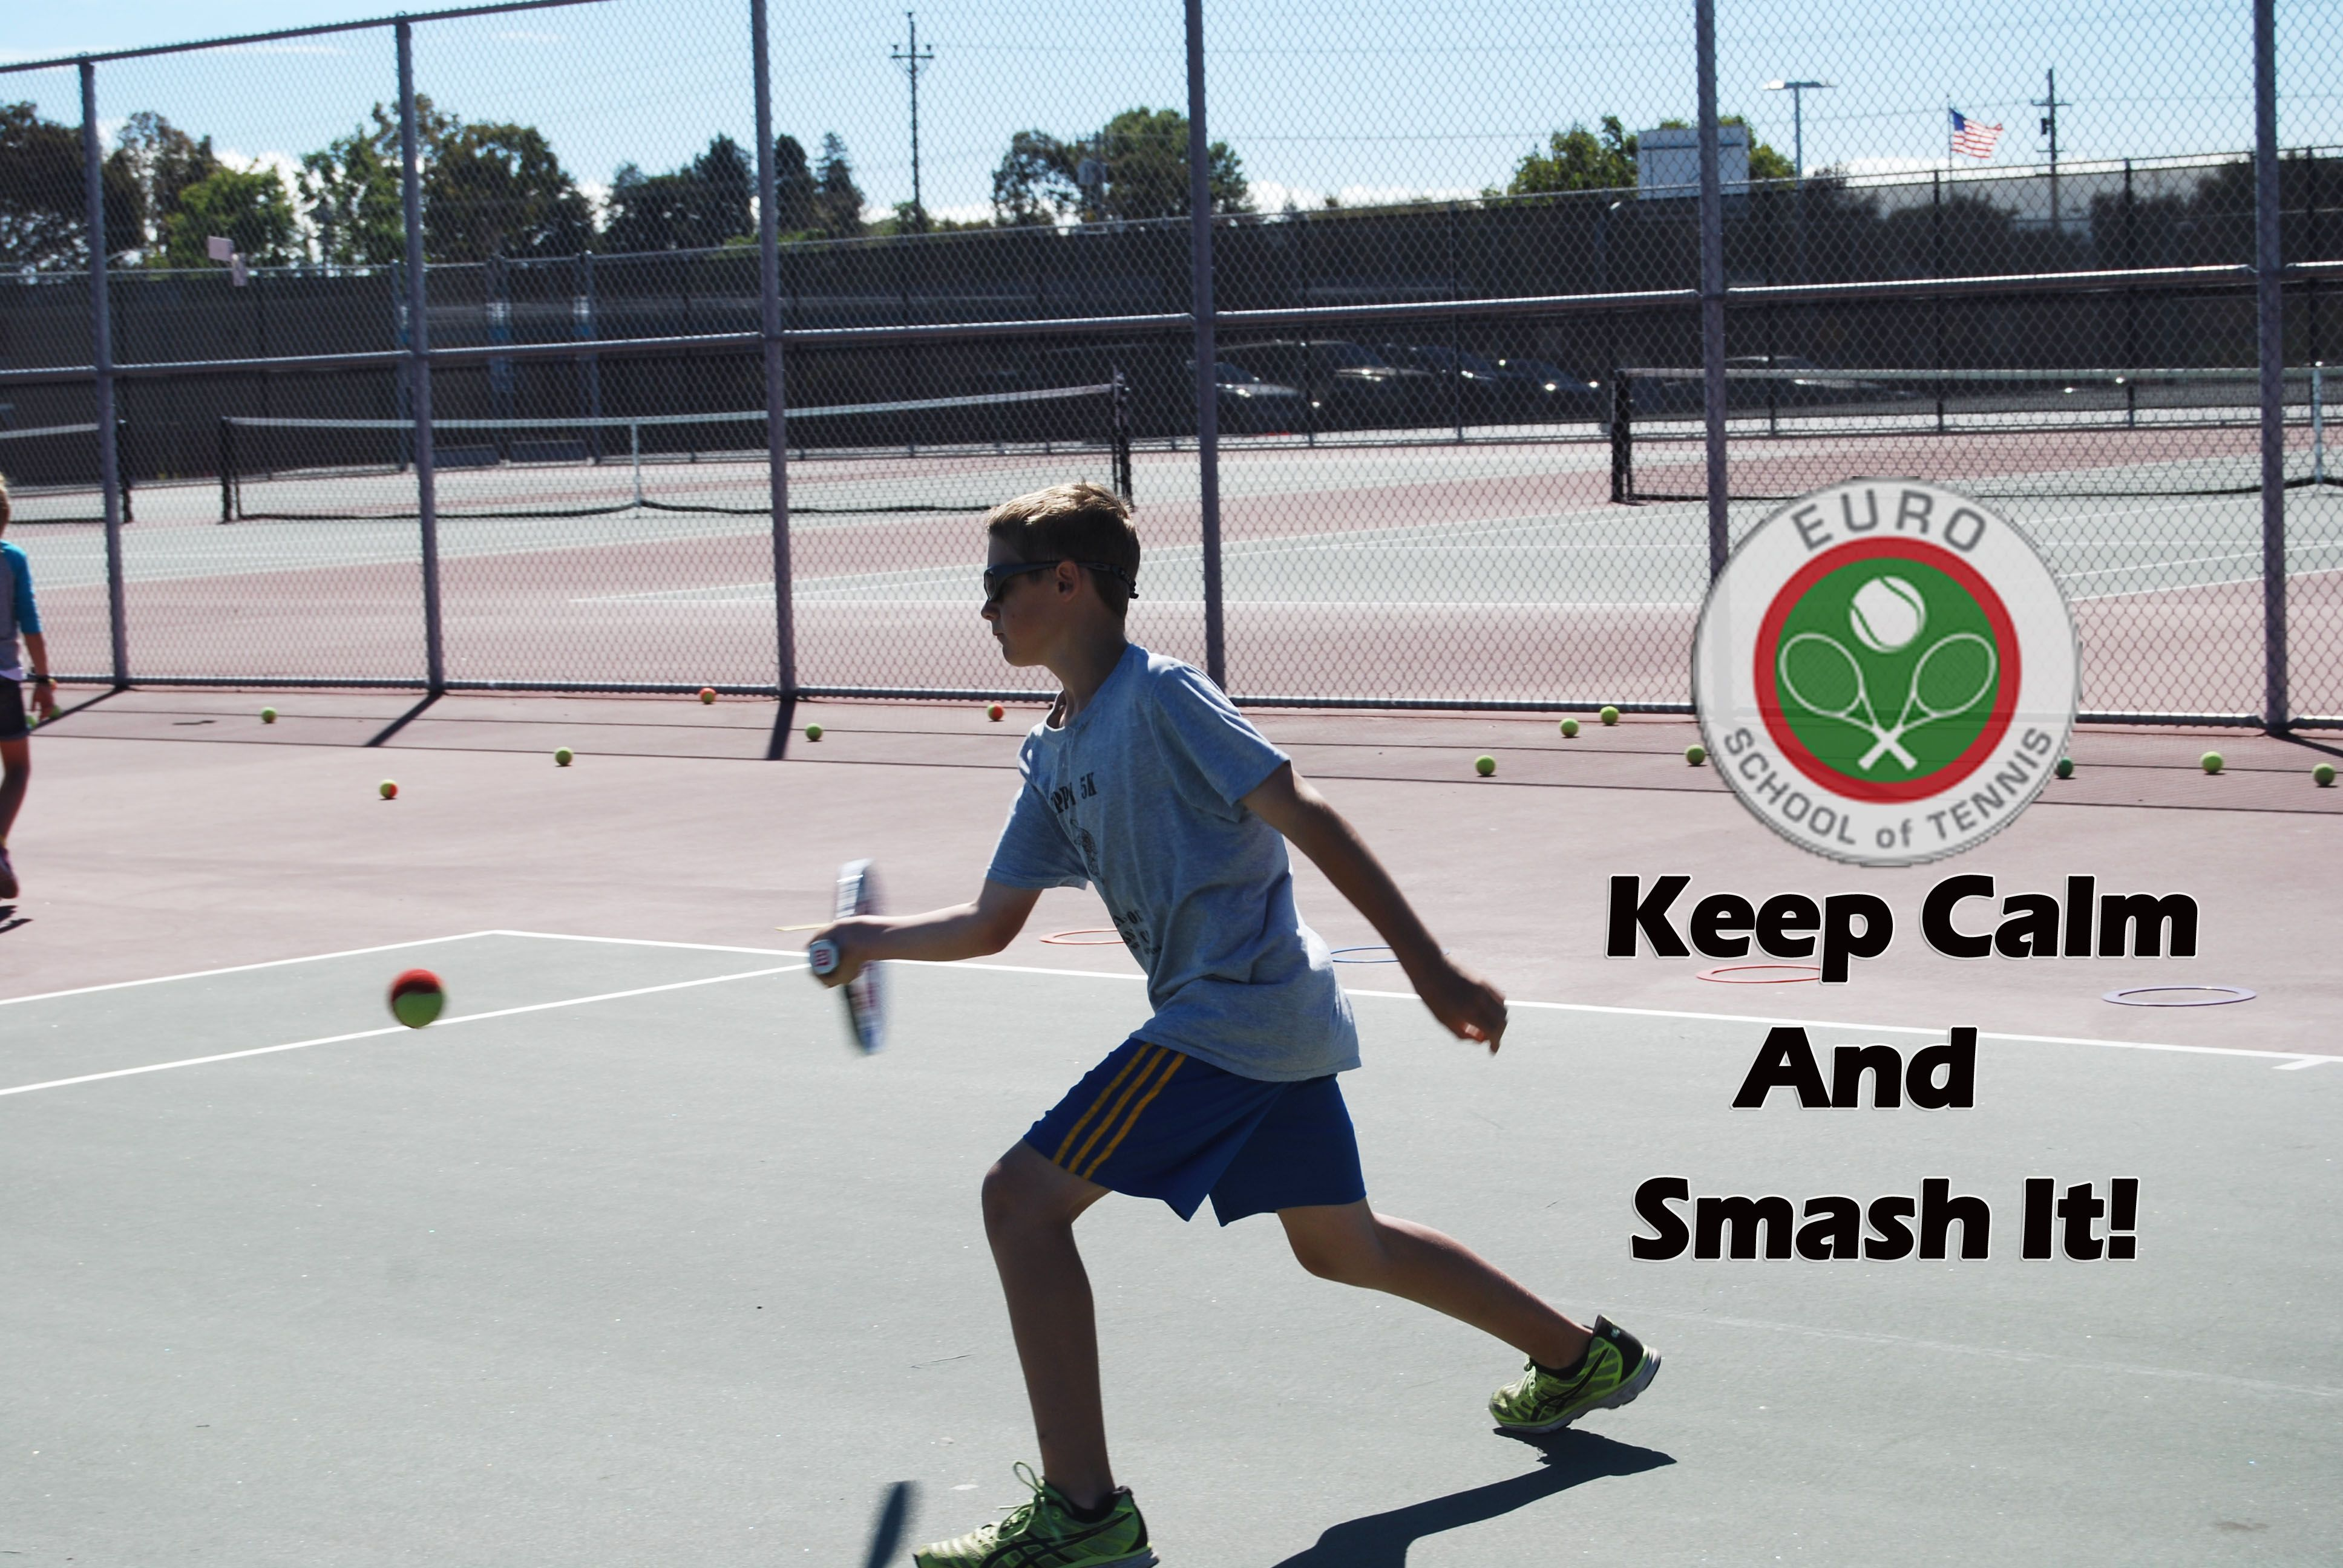 Keep Calm and Smash It! Keep in touch: www.euroschooloftennis.com